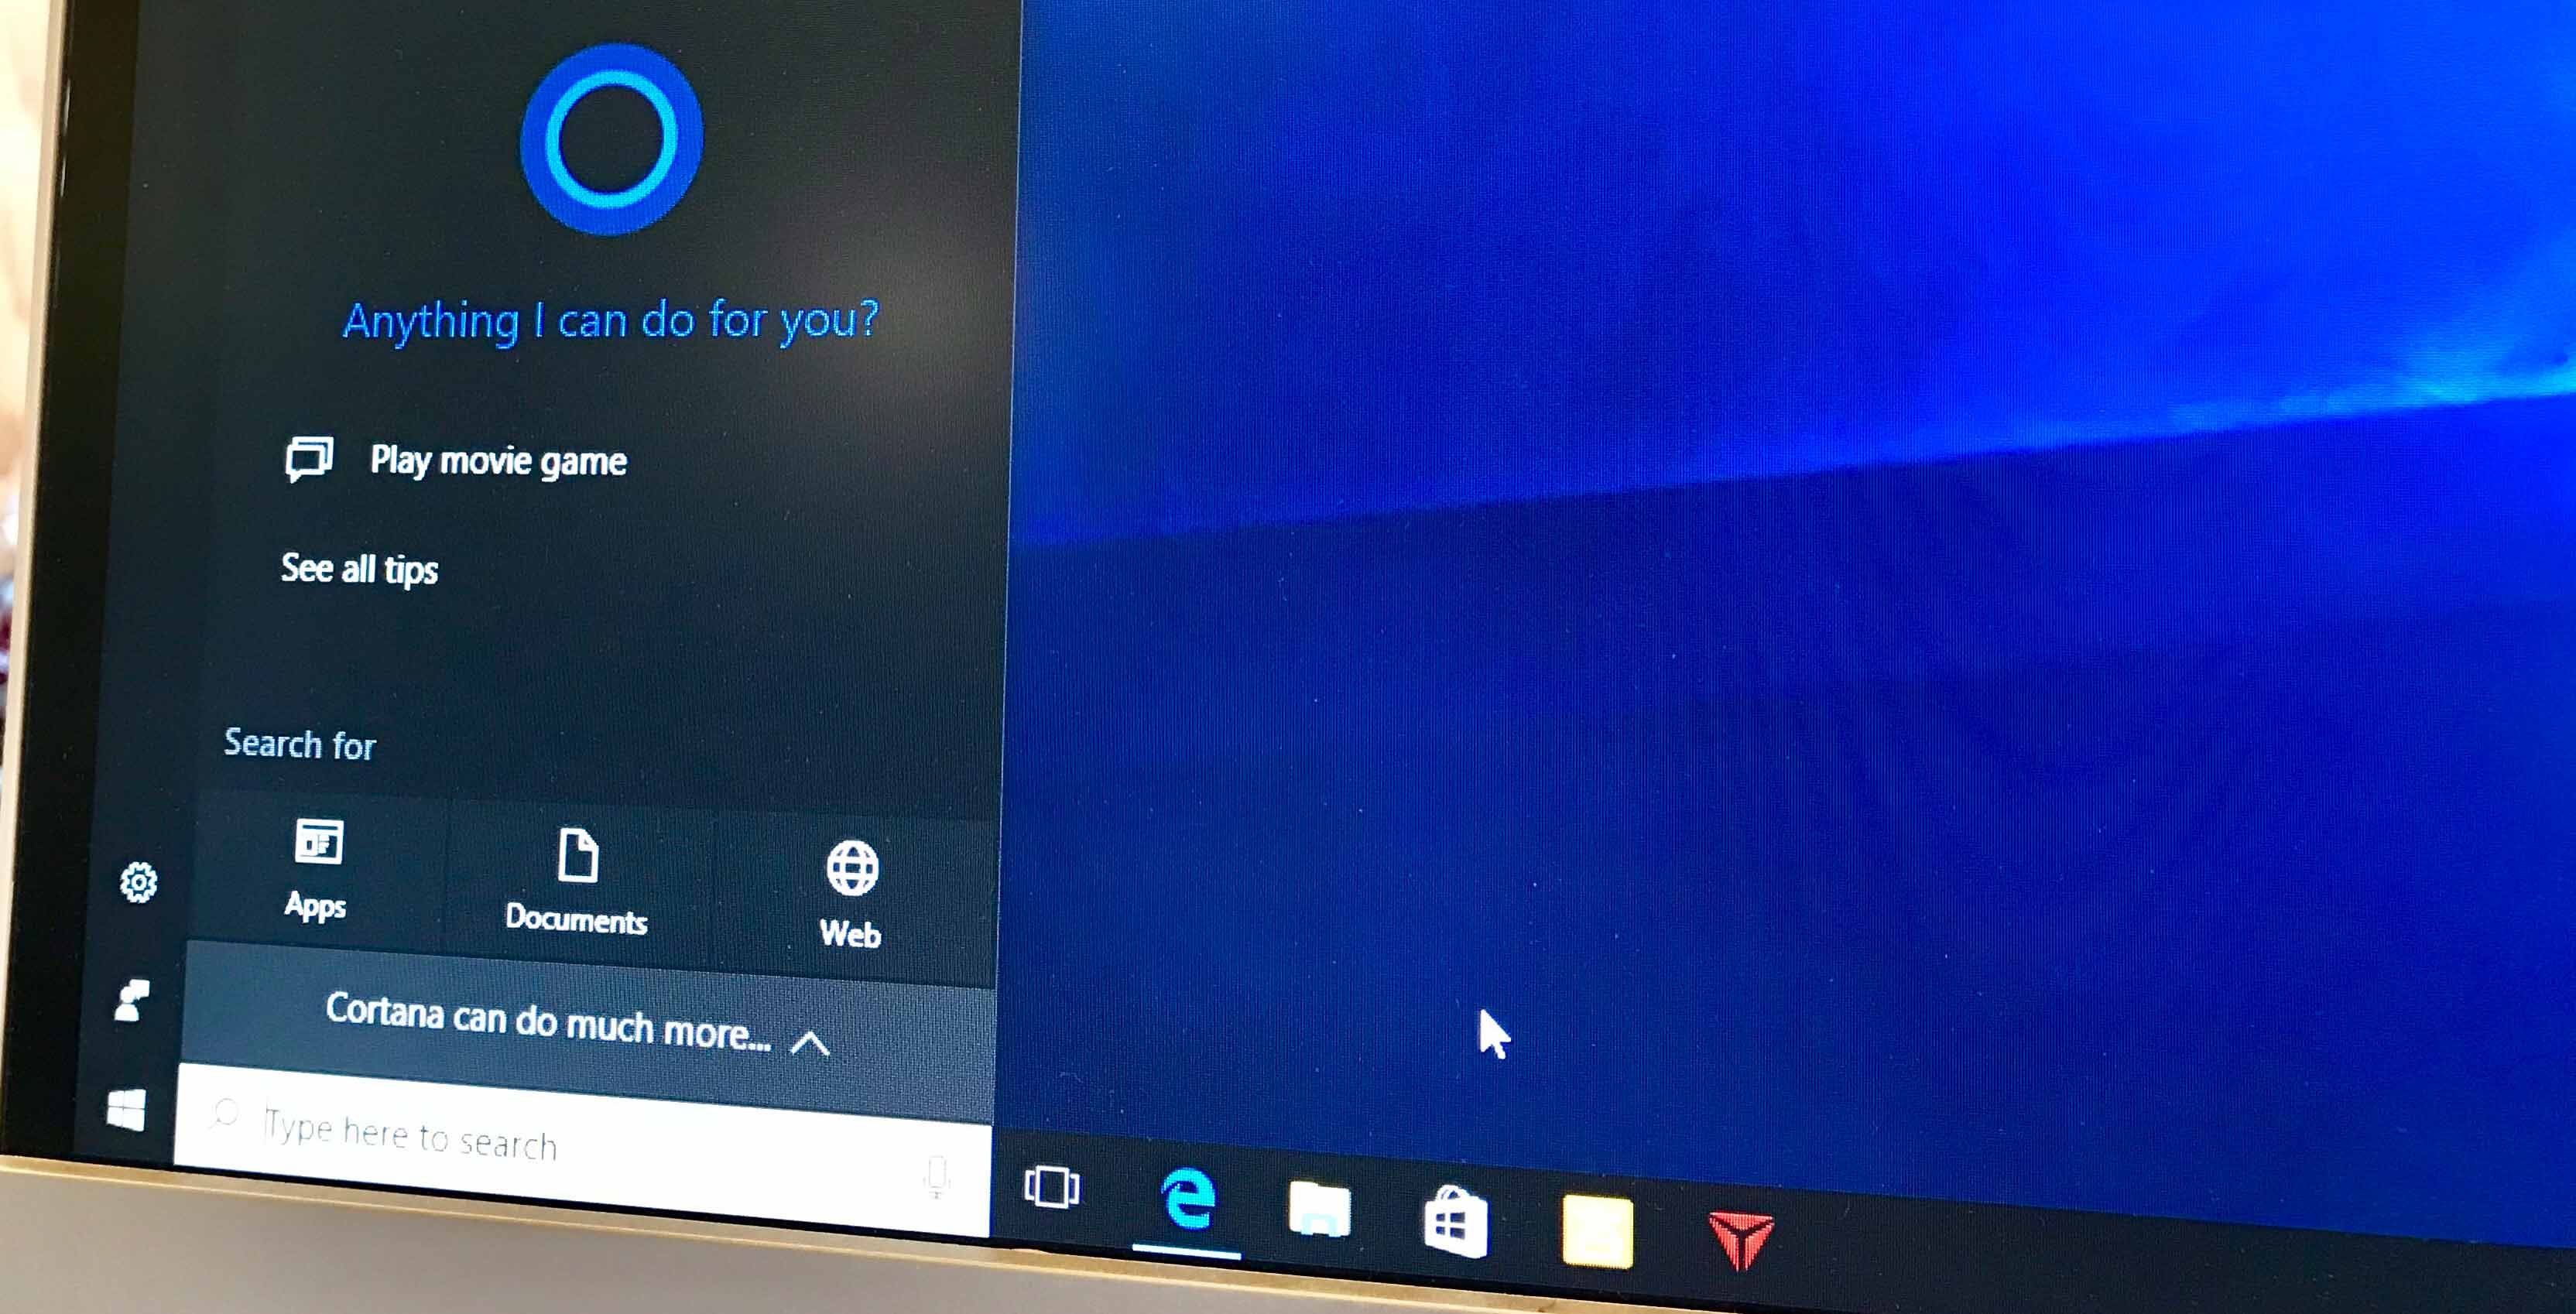 A photo showing the use of the Cortana personal assistant